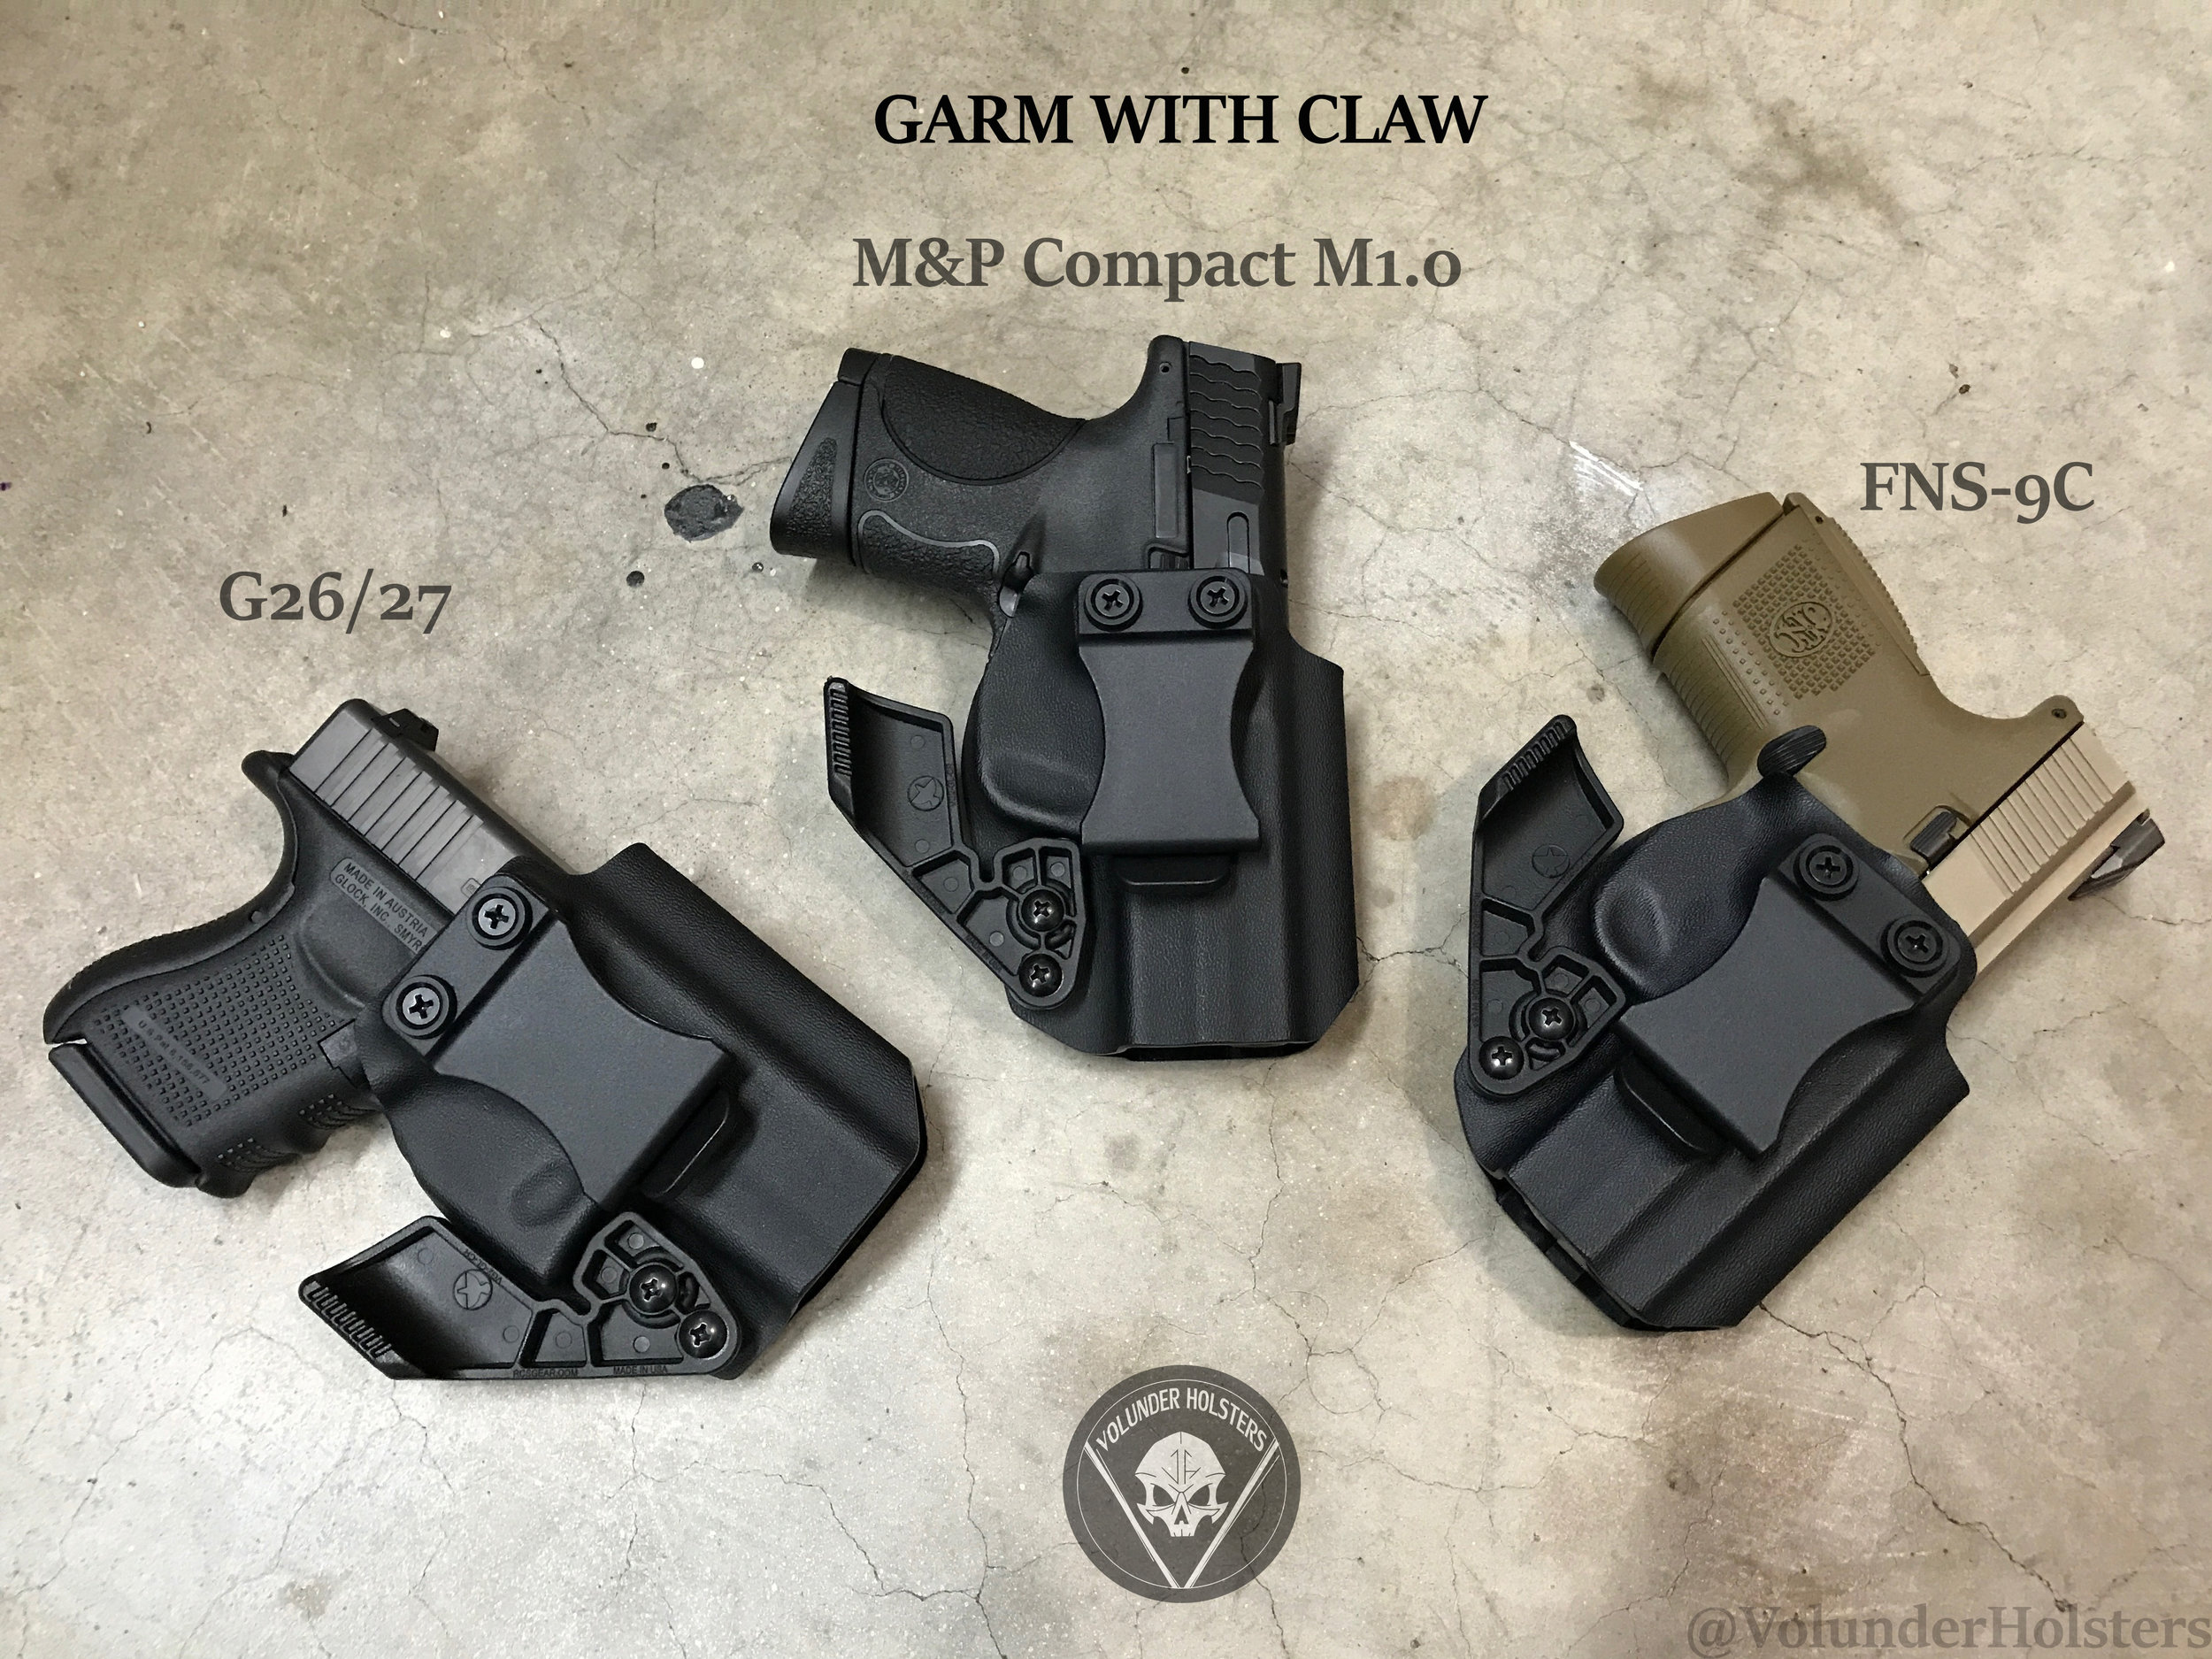 Garm with Claw G26 M&P Original Compact FNS9 Compact v2 Cement Webpage v1.jpg